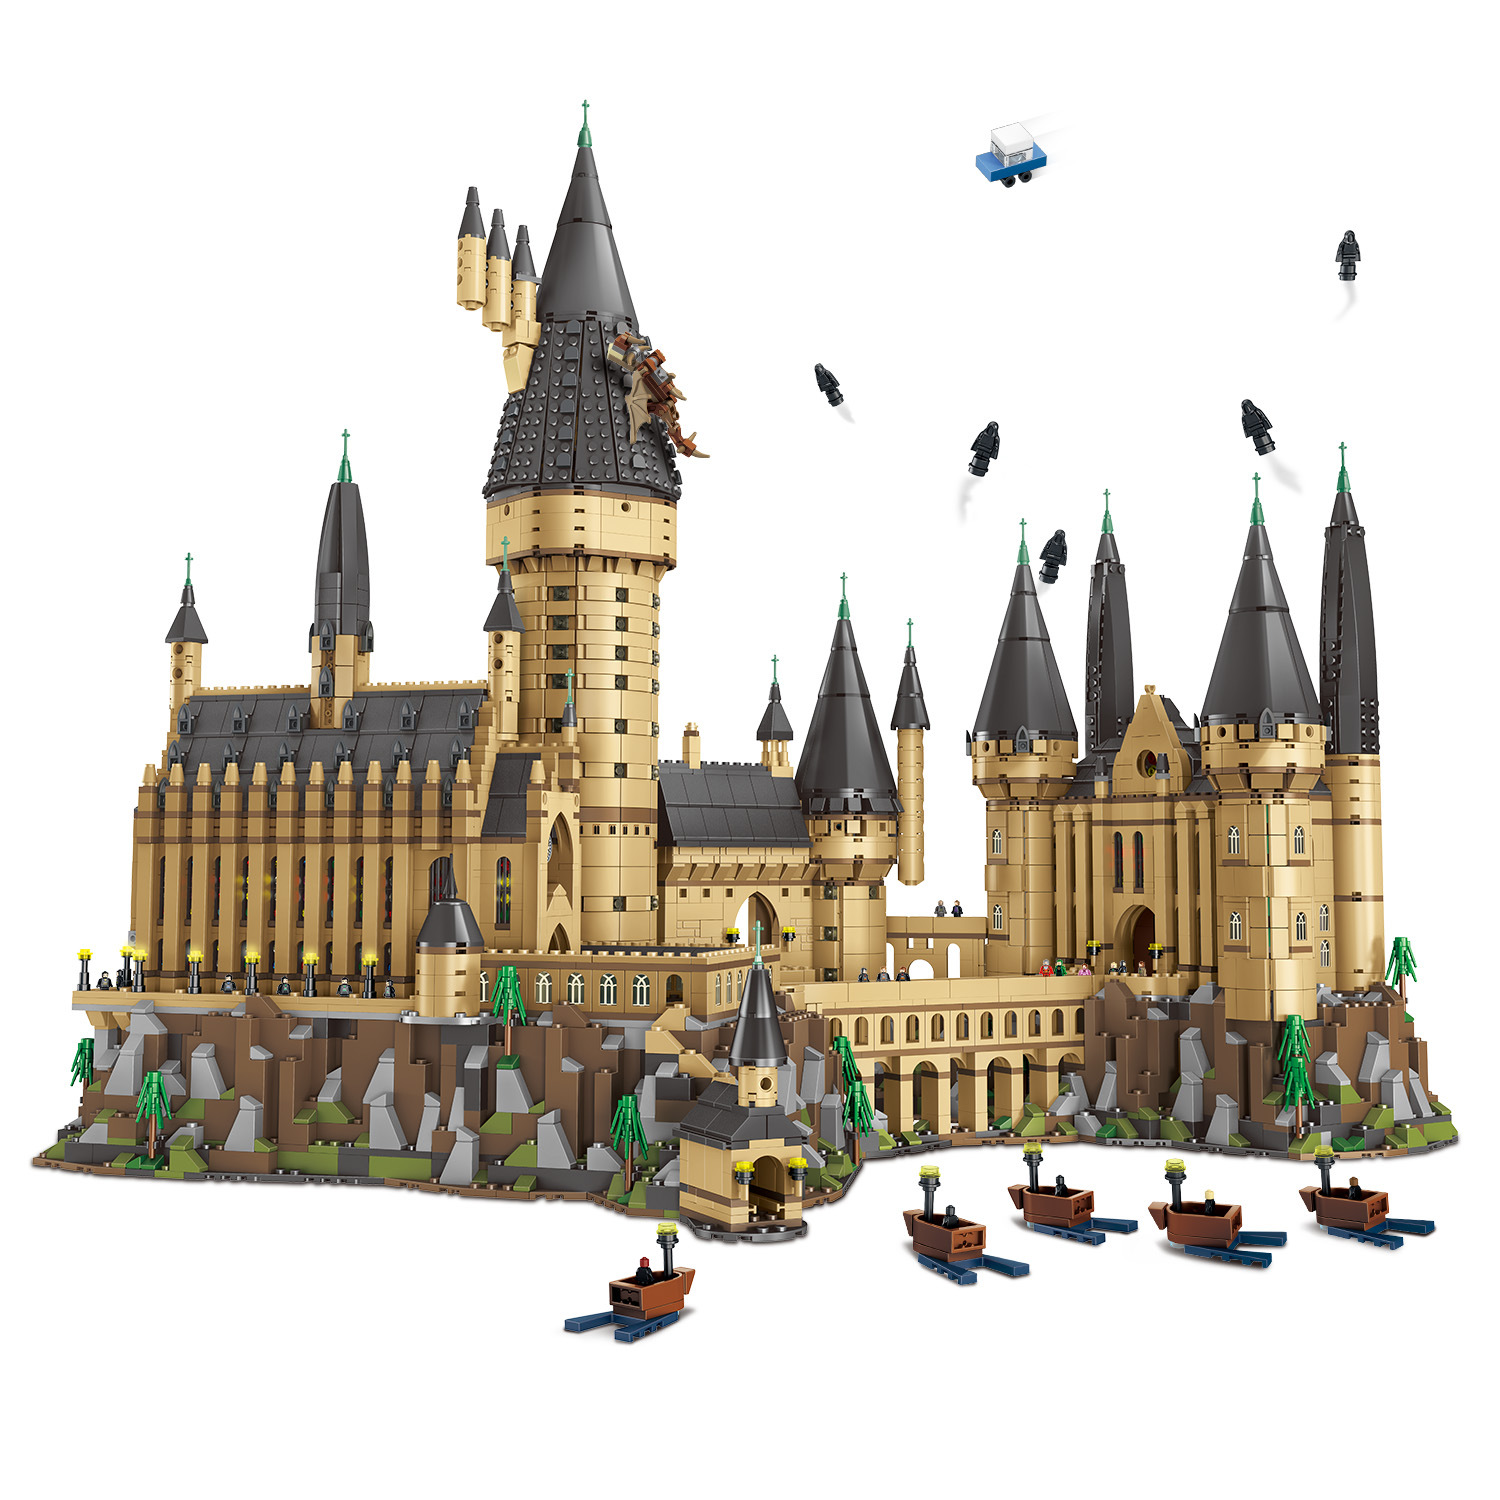 6120PCS Assemble Hogwarts Castle Bricks Wizarding Magical School Figures Splicing Building Blocks Toy Gifts for Kids and Adult